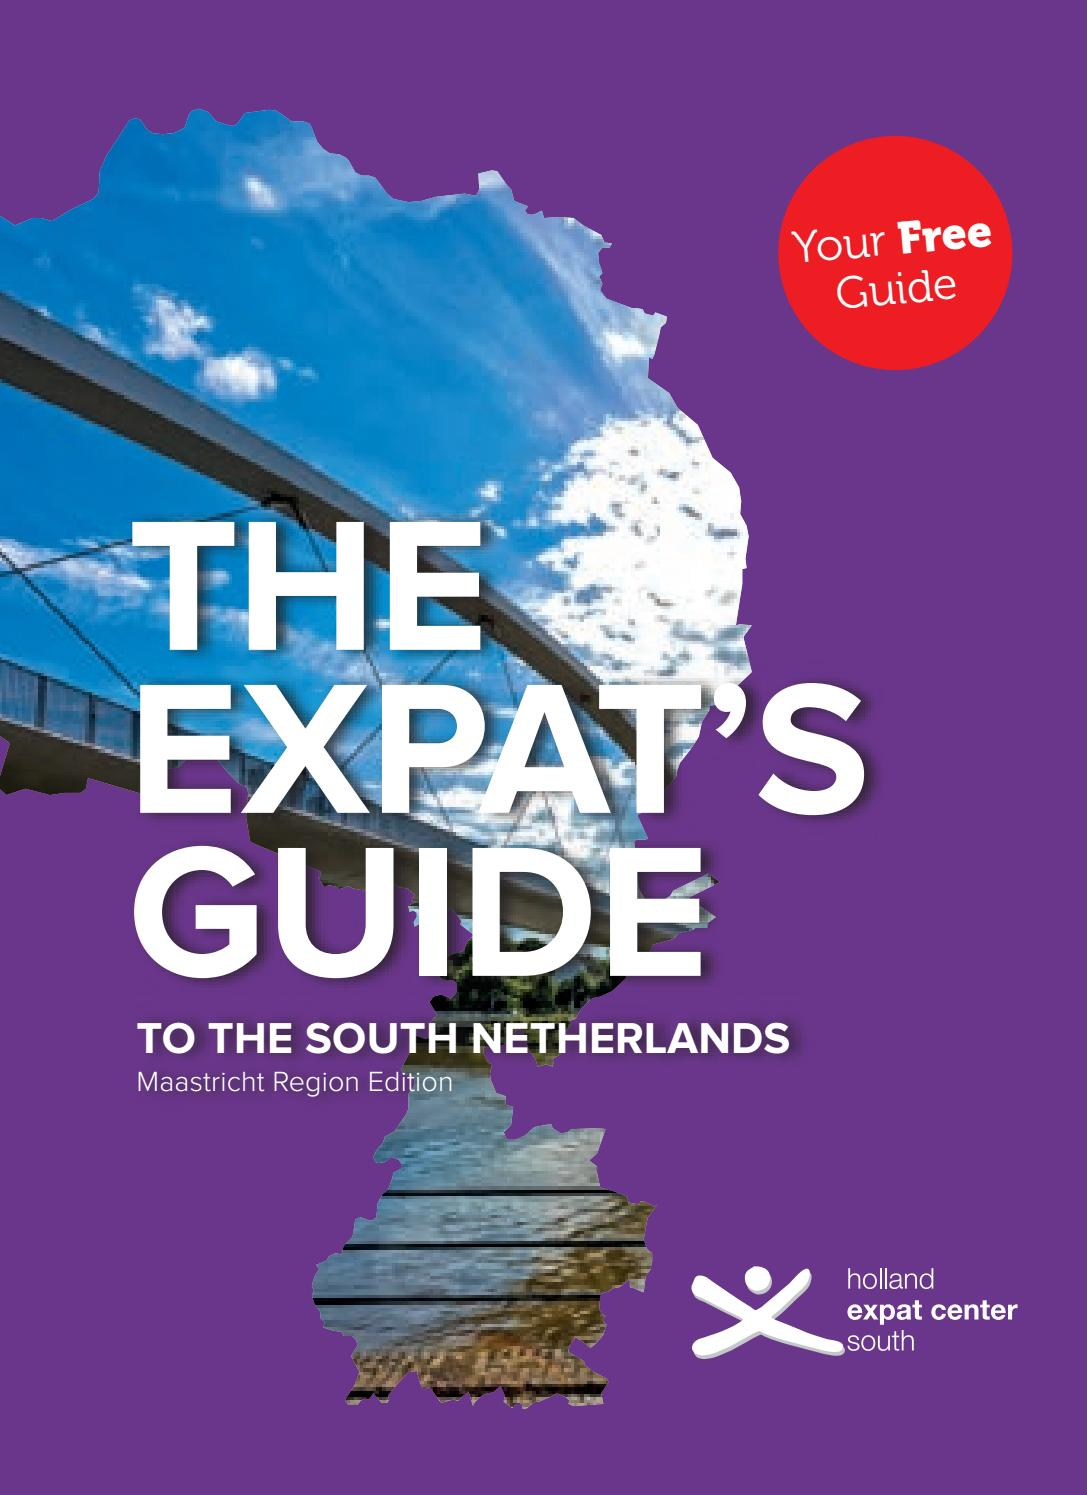 The Expat's Guide To The Southherlands: Maastricht Region Edition,  Summer 2016 By Holland Expat Center South  Issuu